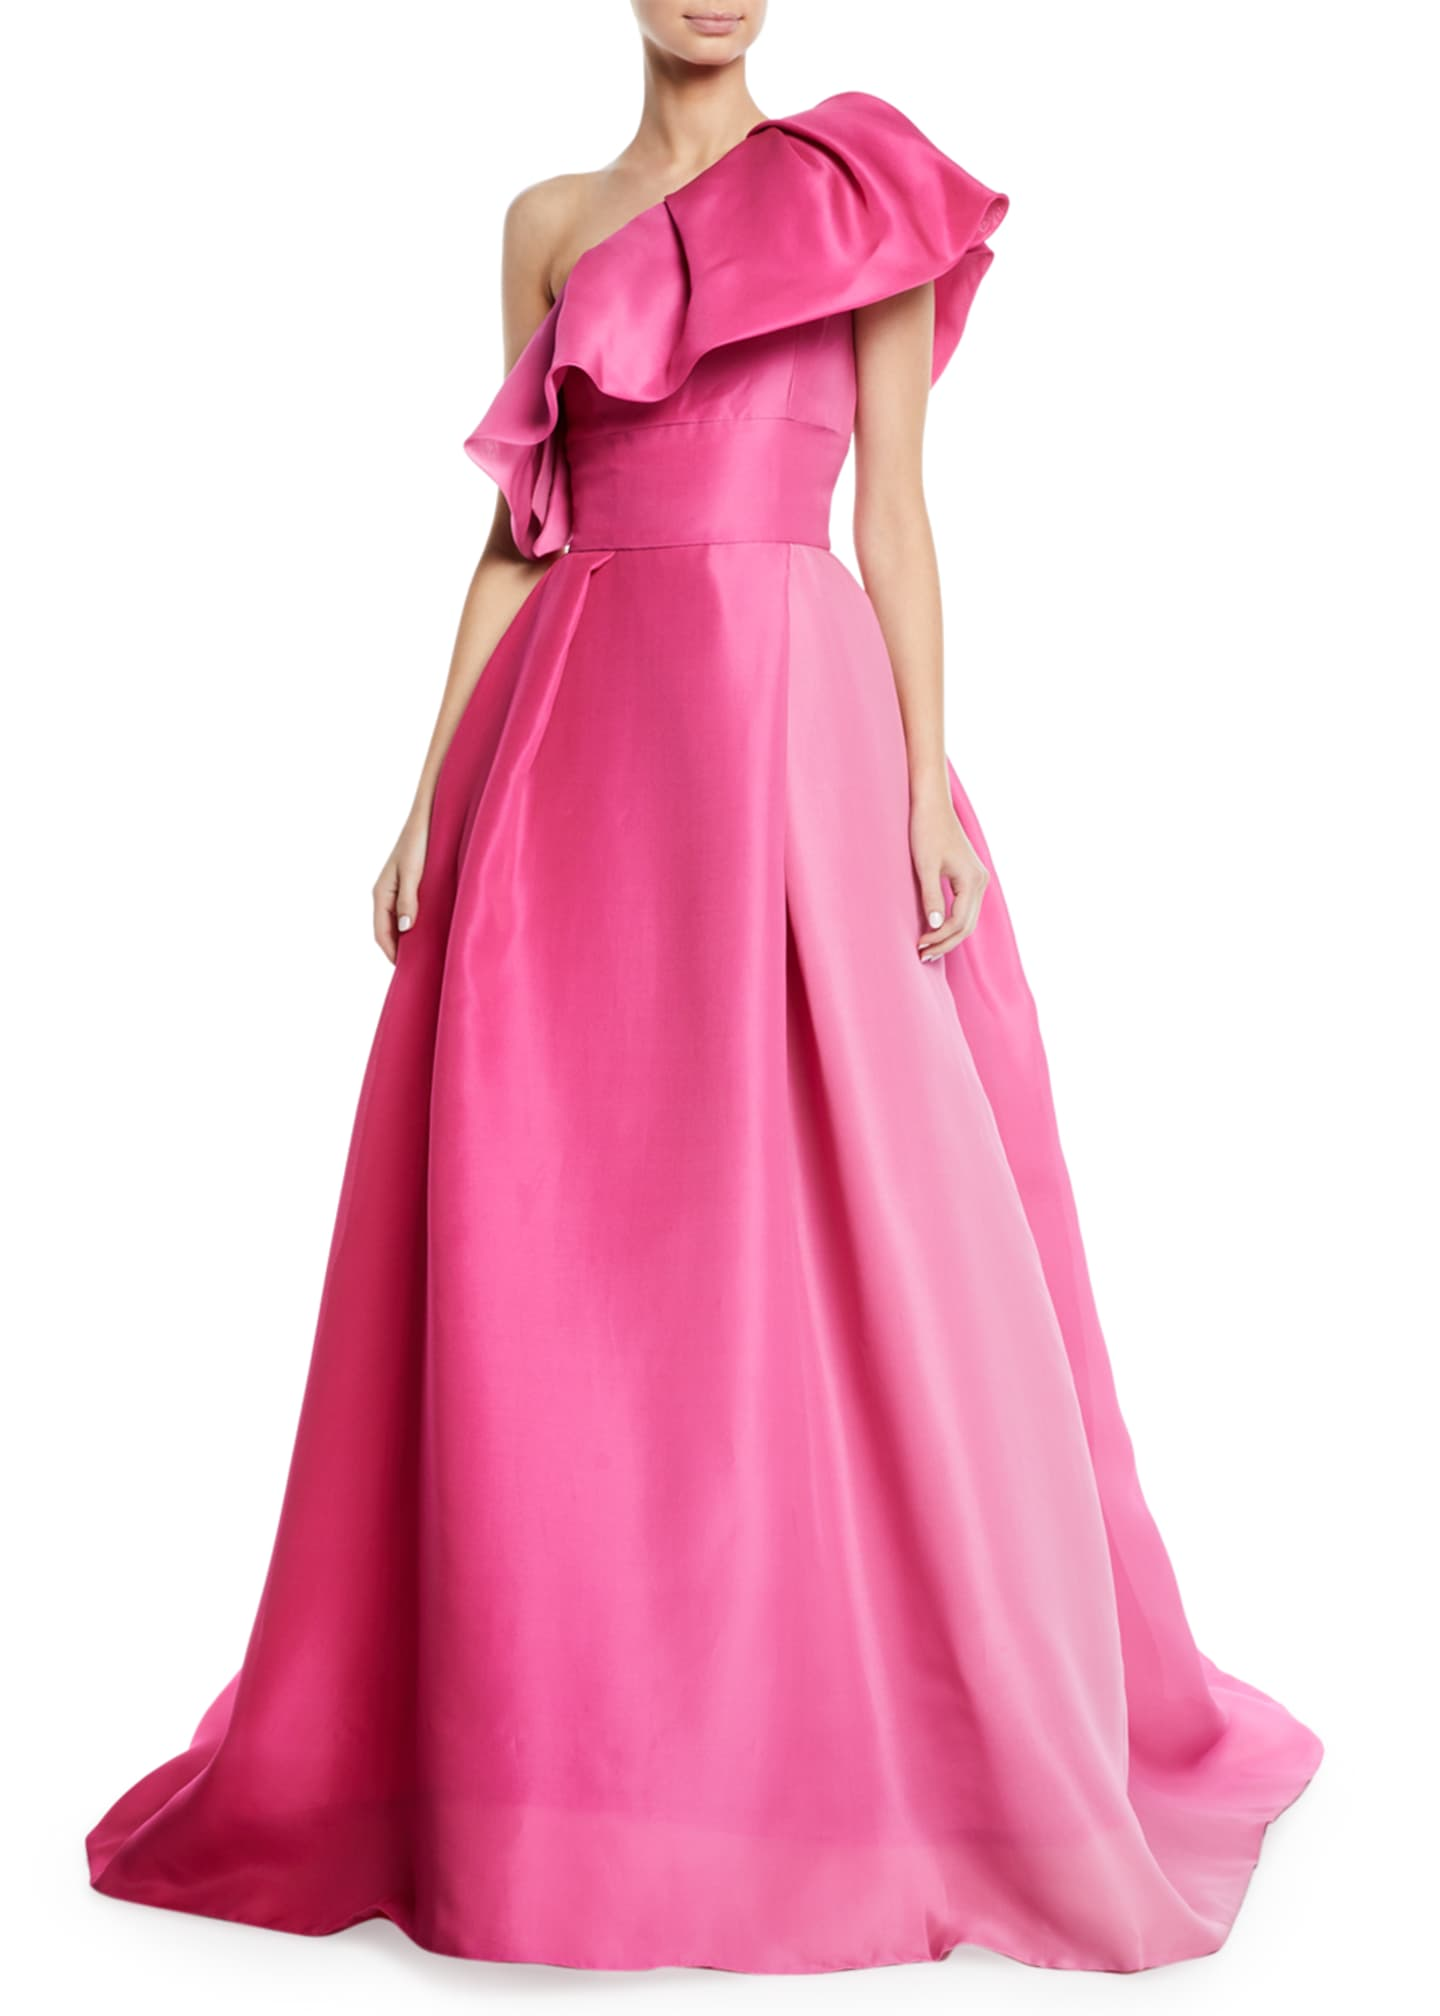 Monique Lhuillier One-Shoulder Ruffle-Neckline Ball Gown